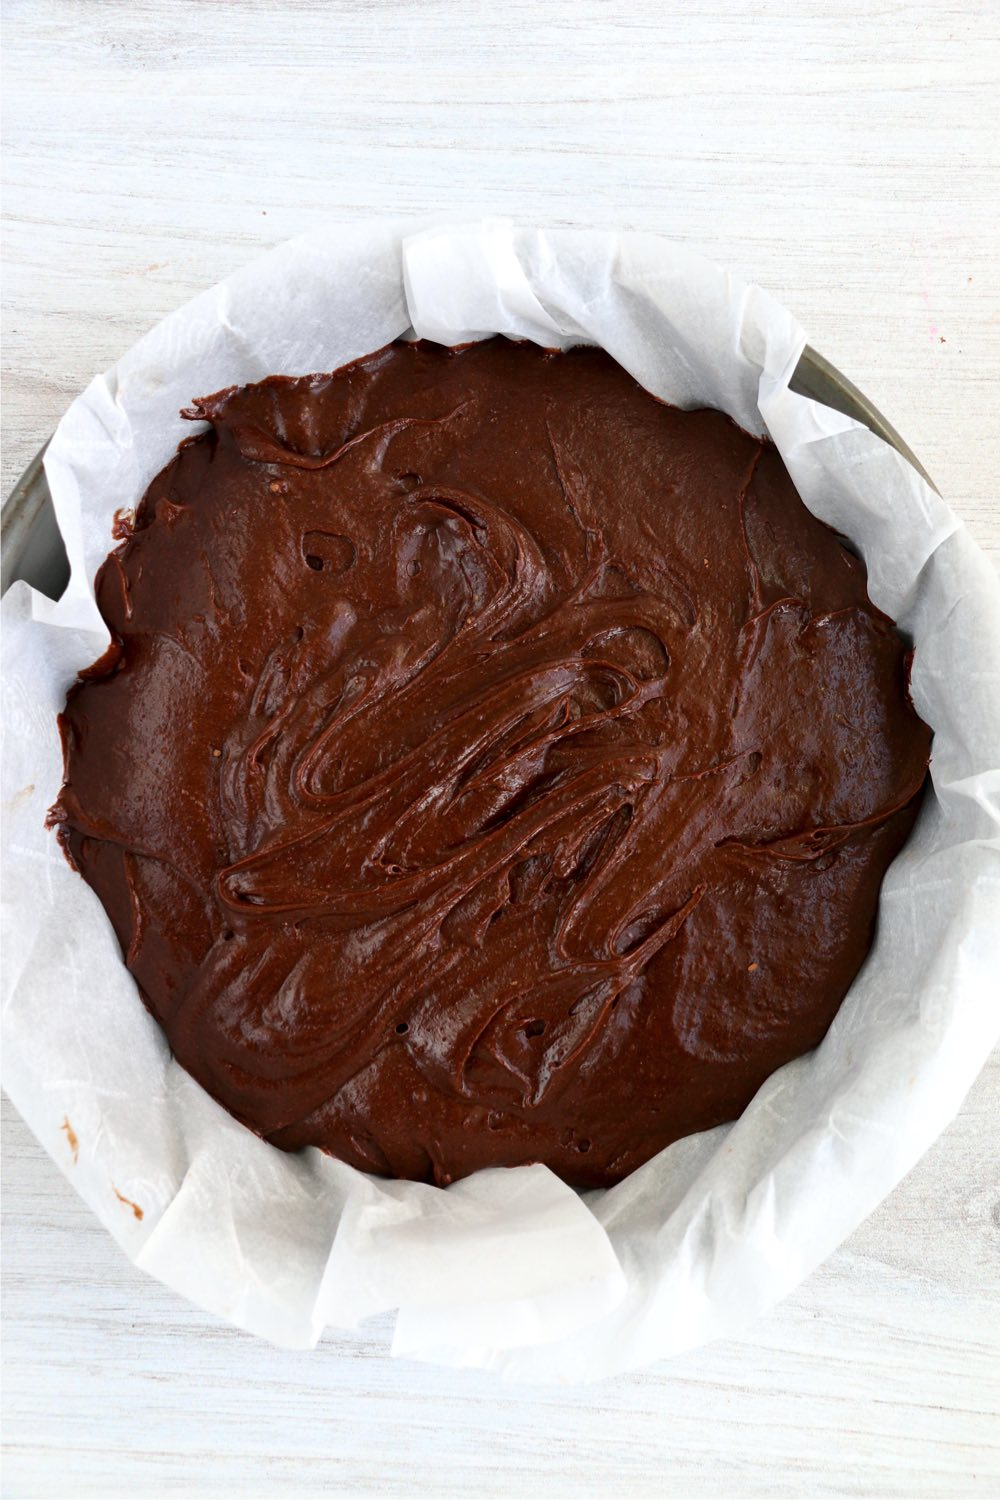 parchment paper lined pan with chocolate batter inside